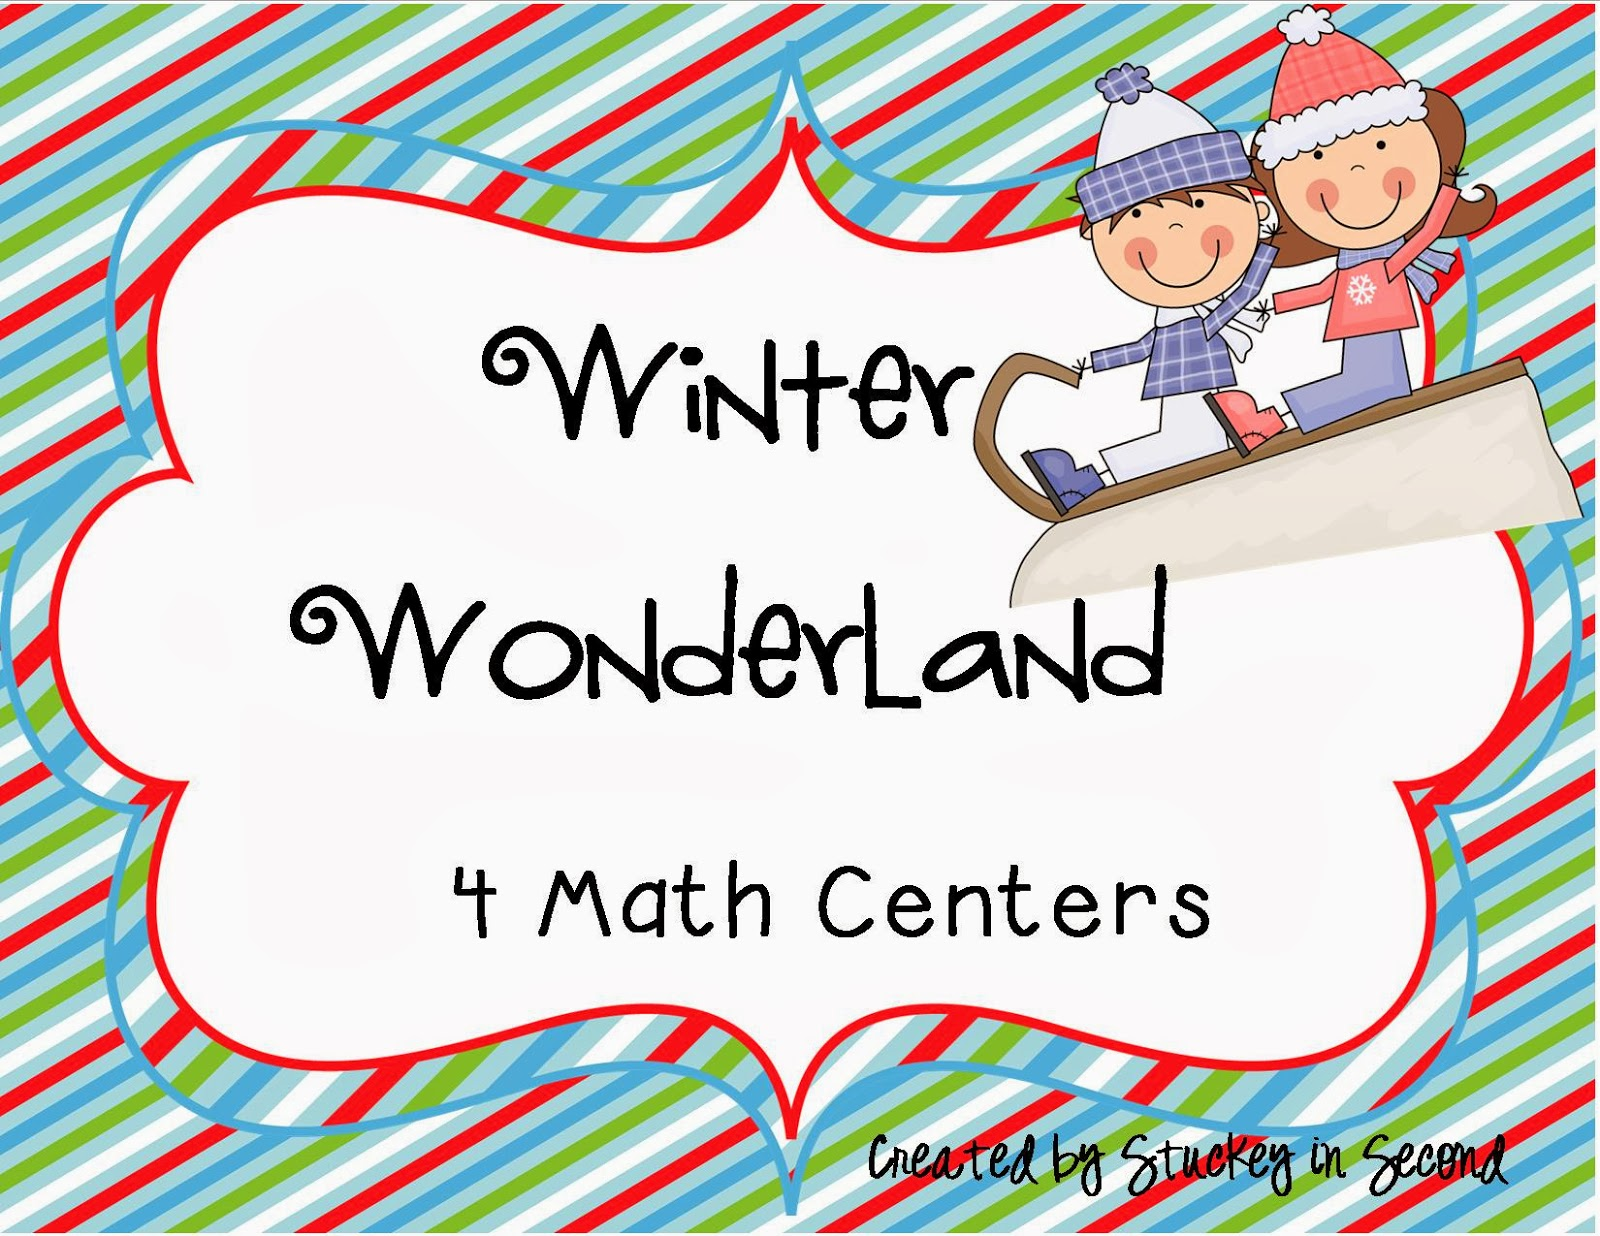 http://www.teacherspayteachers.com/Product/Winter-Wonderland-Math-Centers-mClass-Math-Practice-434992